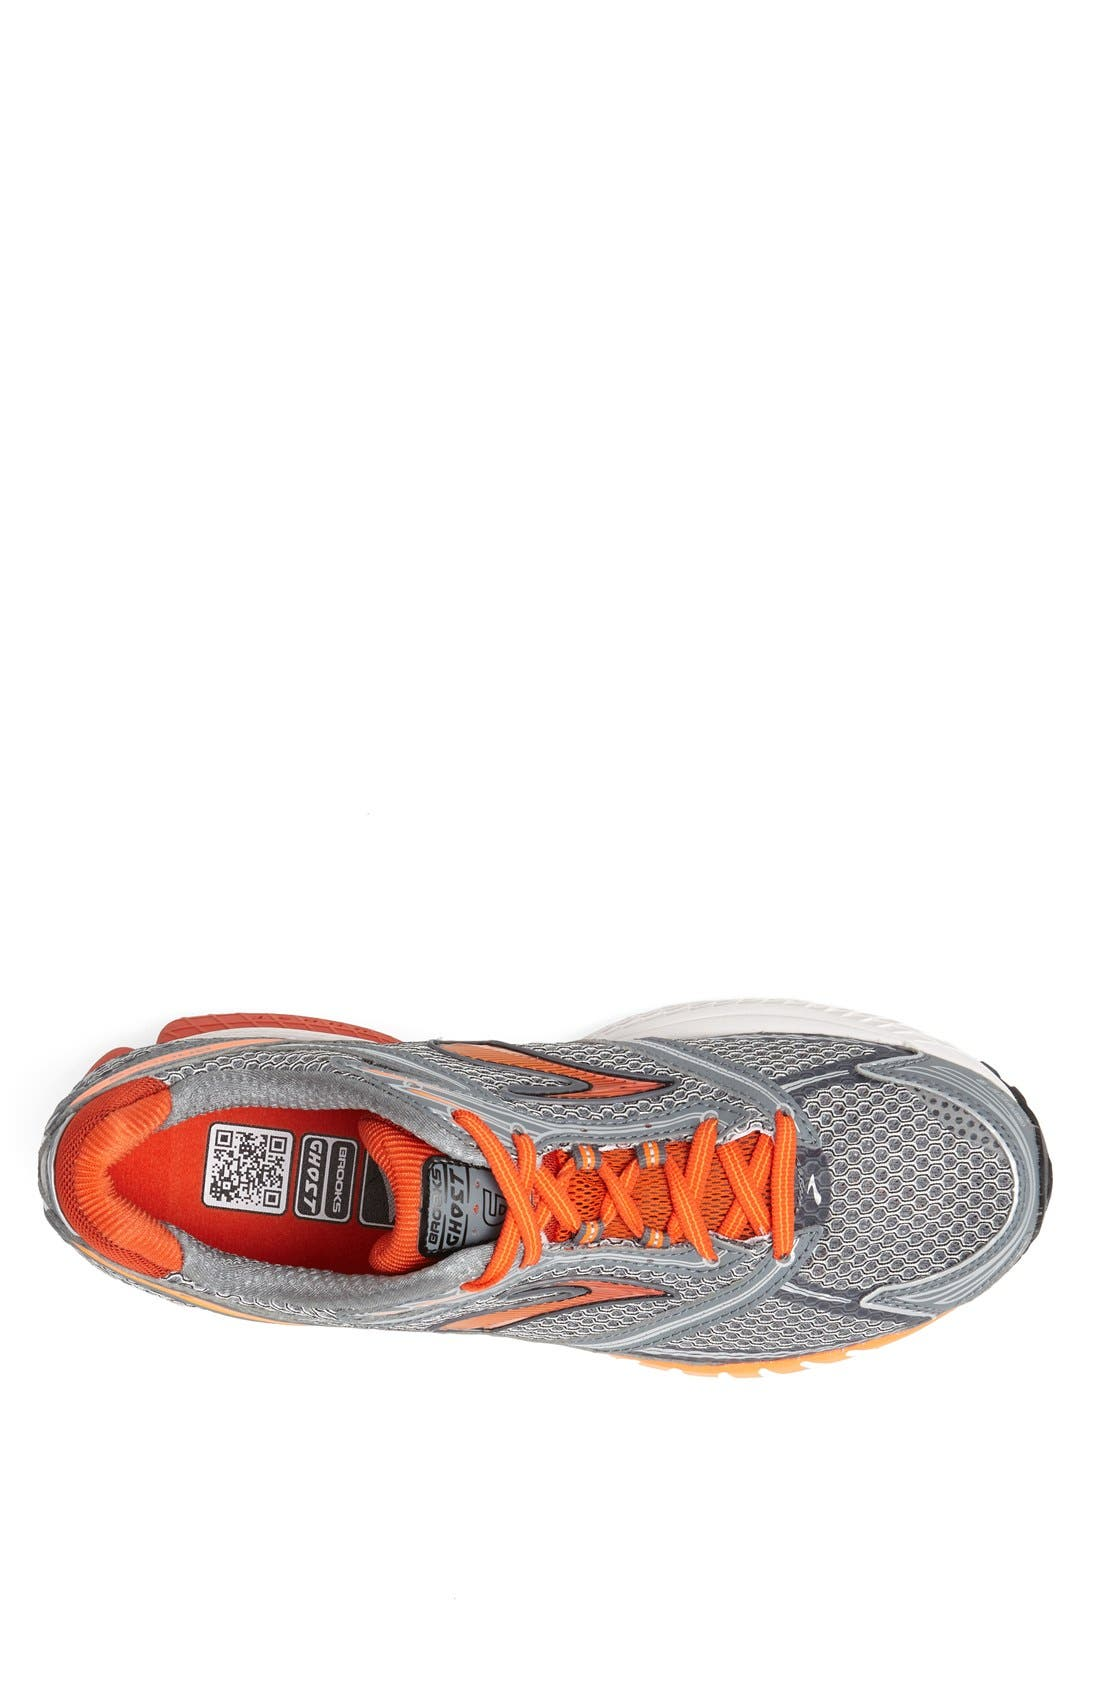 Alternate Image 3  - Brooks 'Ghost 6' Running Shoe (Men) (Regular Retail Price: $109.95)